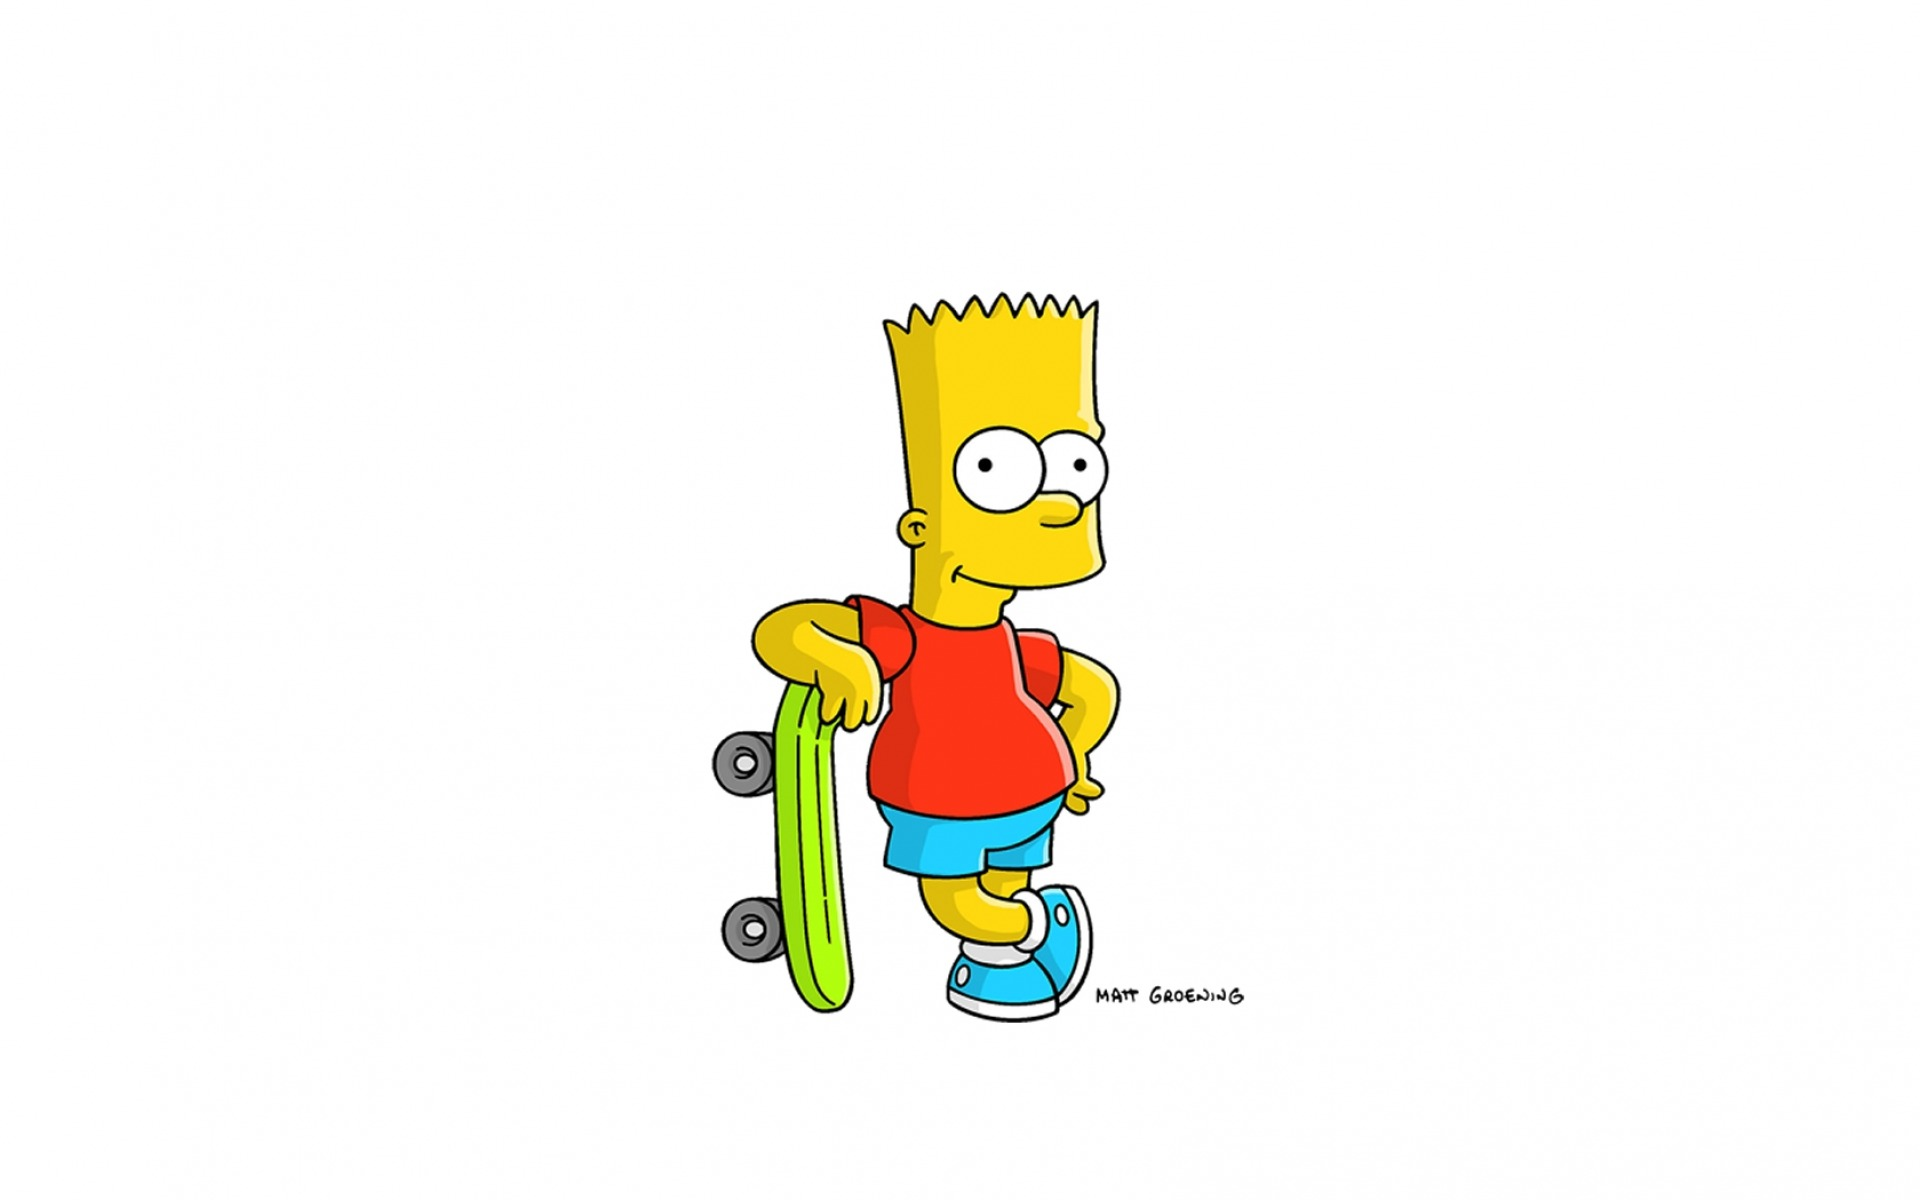 3d Moving Galaxy Wallpaper Bart Simpson Skateboard Wallpapers Bart Simpson